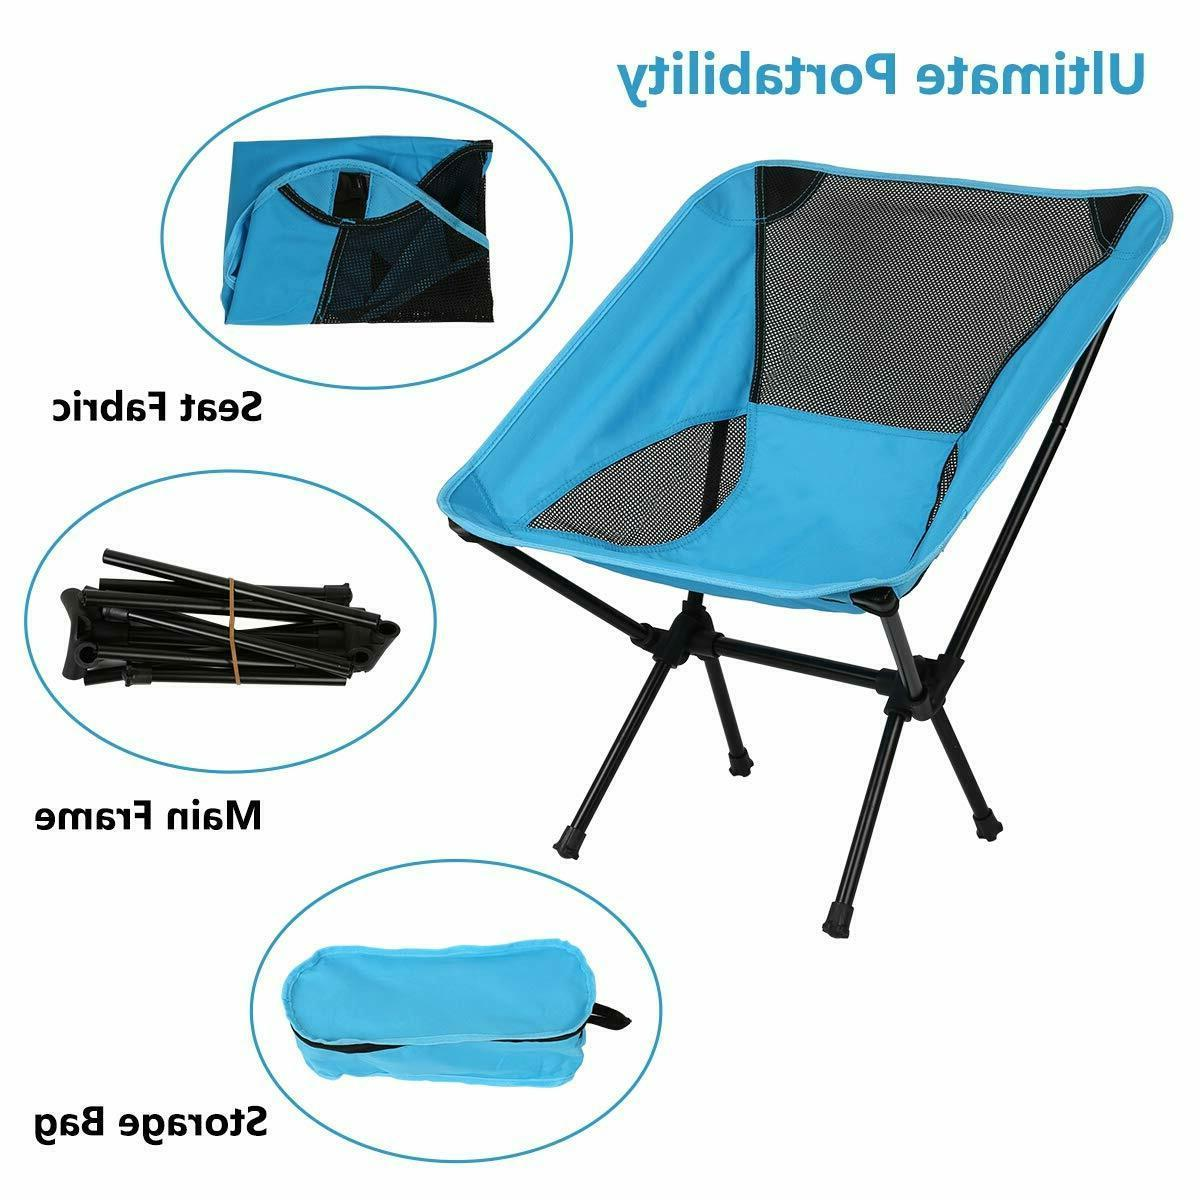 Ultralight Portable Backpack Camping Chair, Lightweight stool